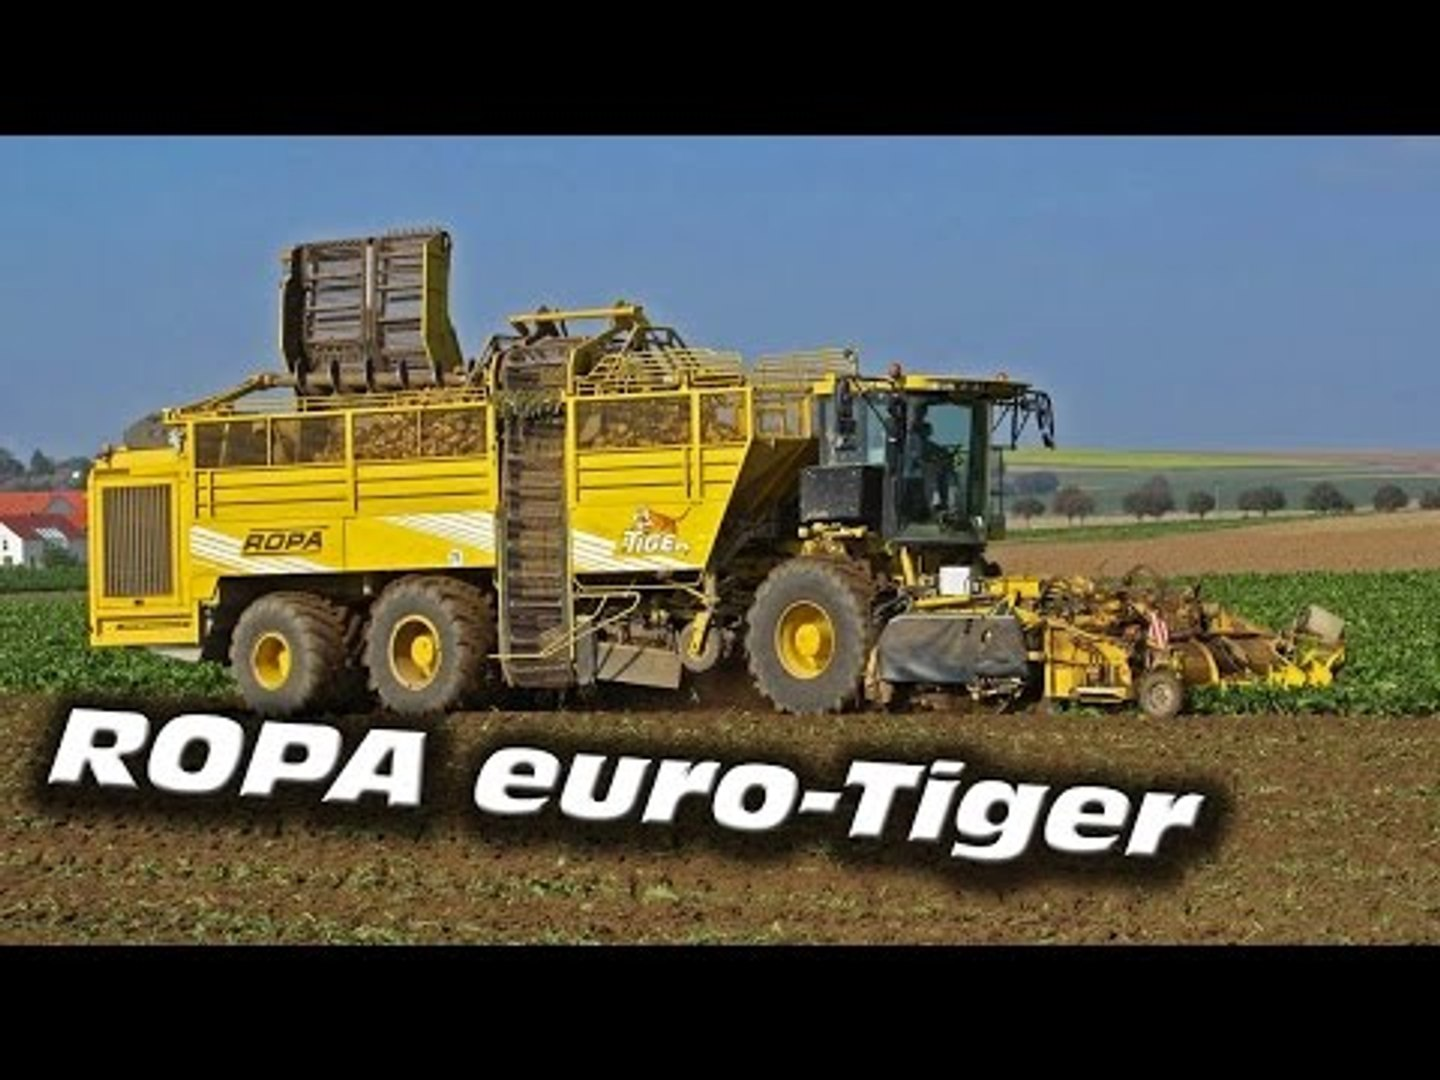 MEGA MACHINE SUGAR BEET HARVESTER ❢ ROPA EURO TIGER ++ HARVESTING ACTION